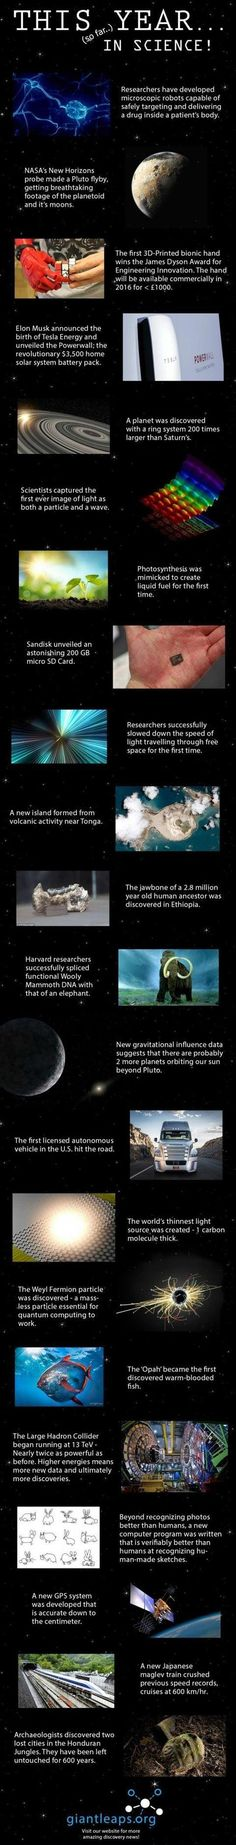 This year (so far) in science #amazing!!!